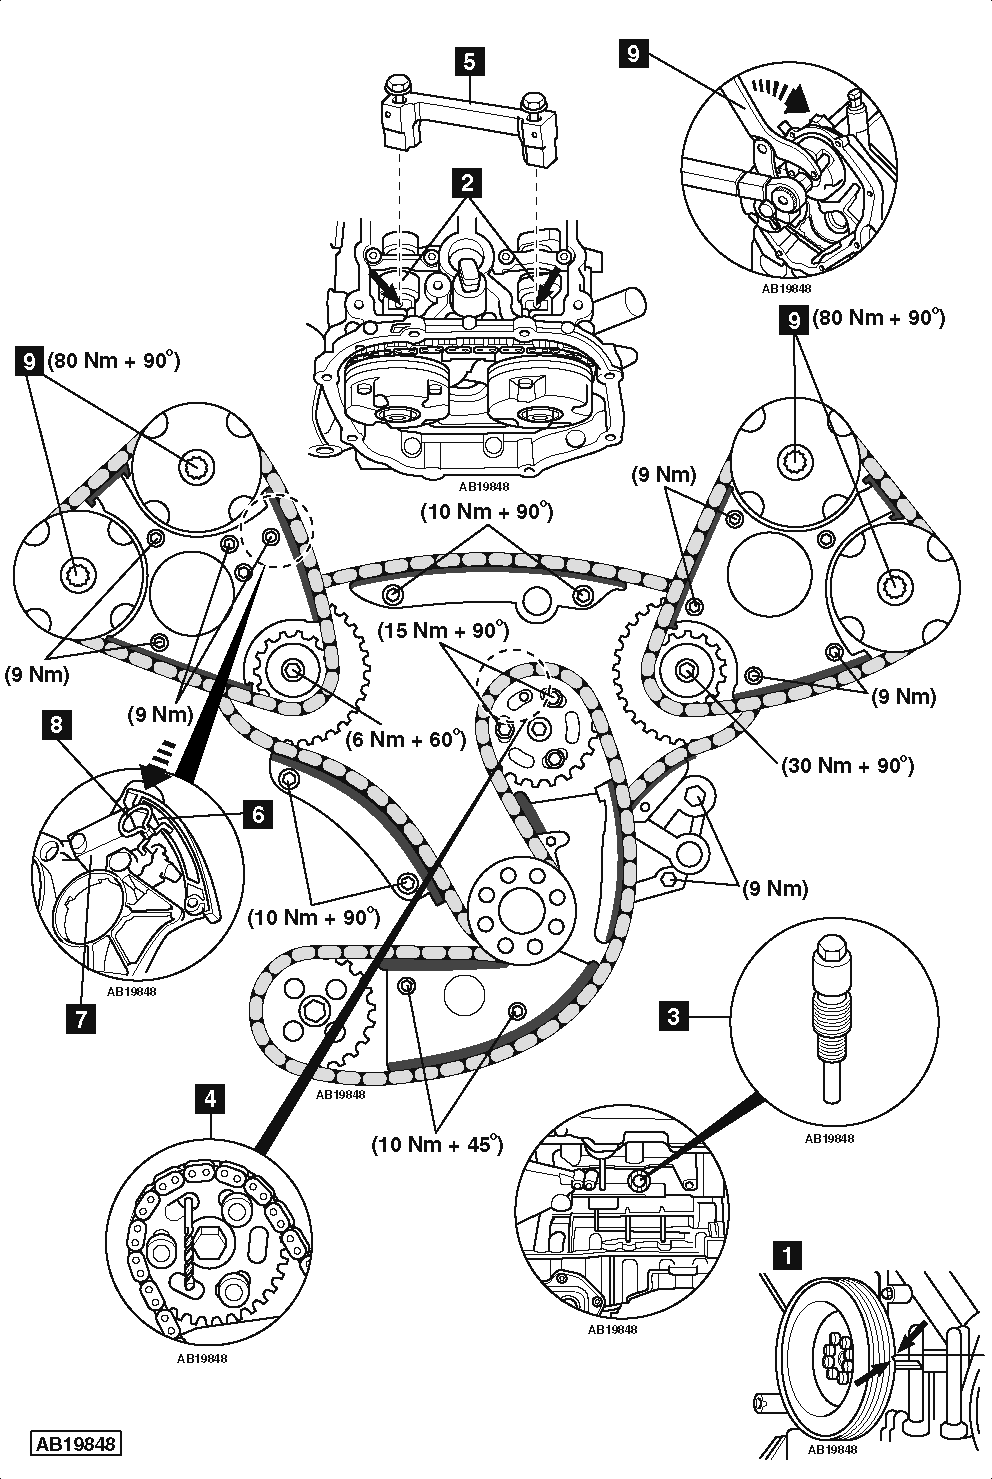 Audi a4 2 4 v6 engine diagram audi wiring diagrams instructions how to replace timing chain on audi a4 b8 3 2 fsi quattro publicscrutiny Images